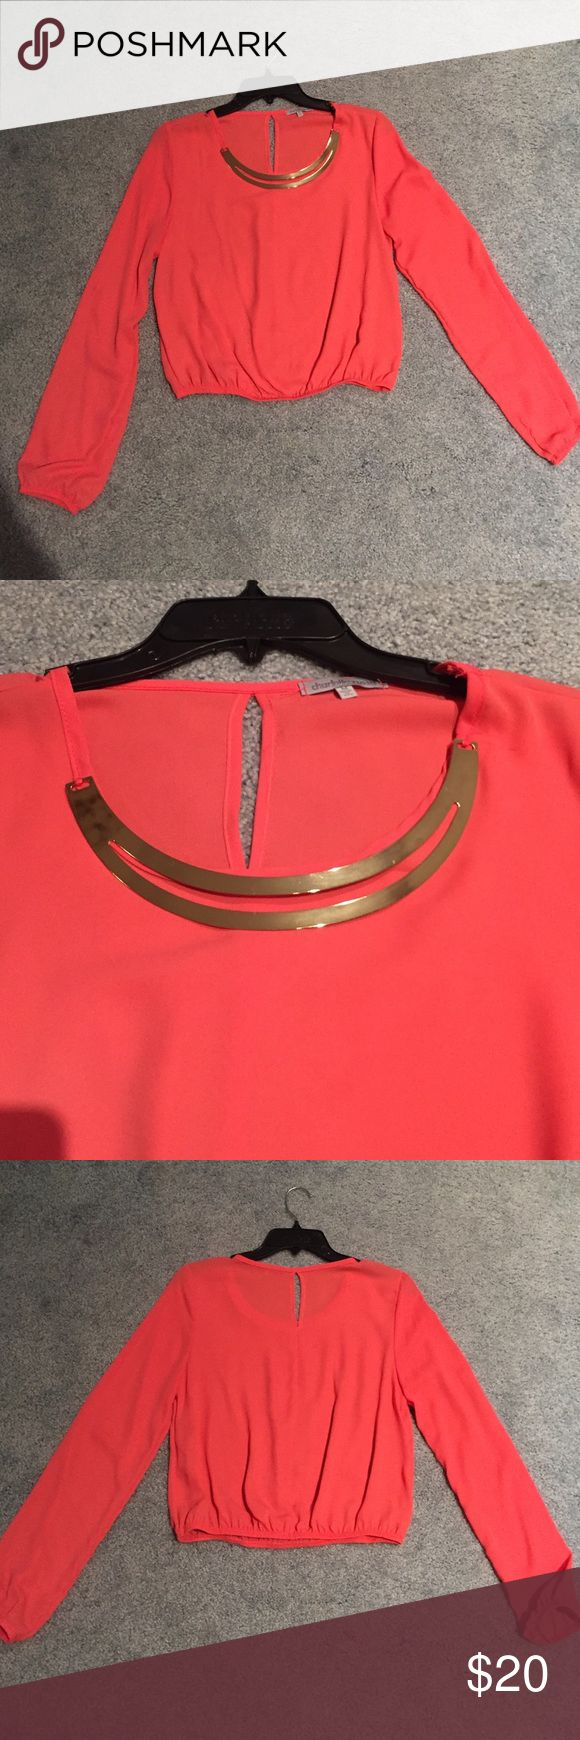 Coral Blouse with Gold Accent Necklace Really cute coral shirt that has a built in gold necklace! ONLY WORN ONCE!!! Charlotte Russe Tops Blouses